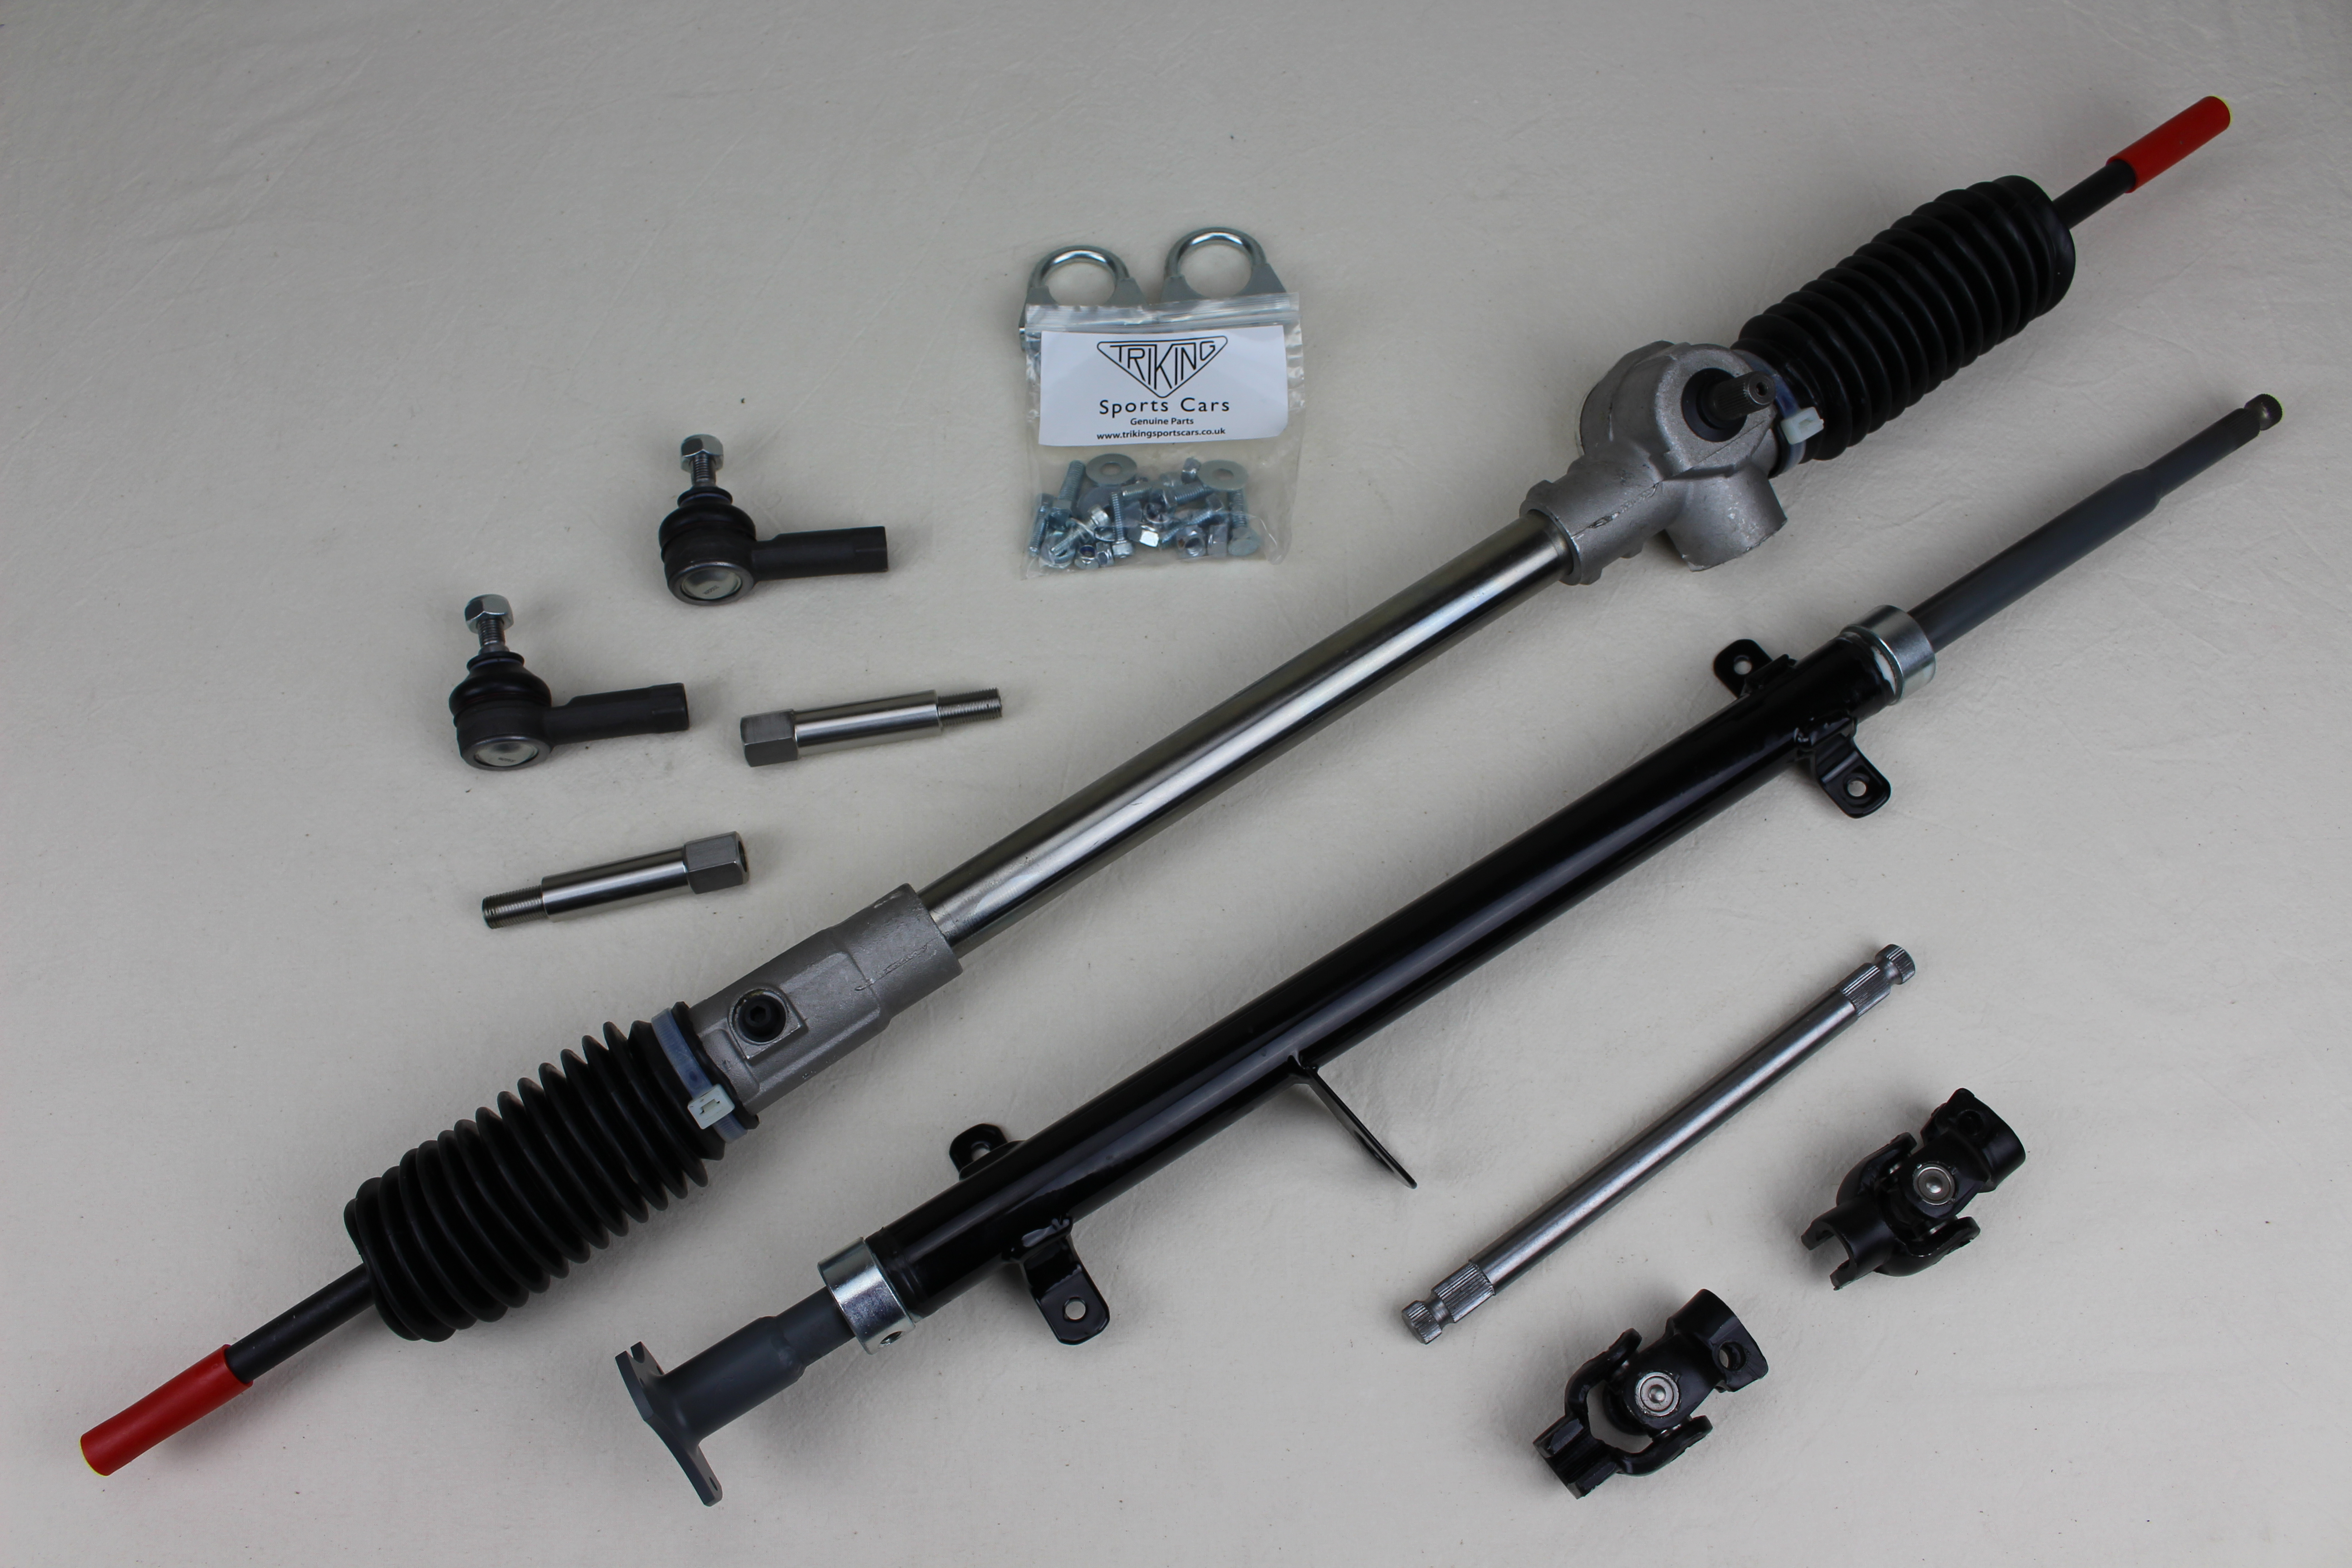 Complete steering assembly, Upper and lower column, couplings,  rack,all fittings, right or left hand drive, suits all Triking models, also available with quick release steering boss, Components also available individually.